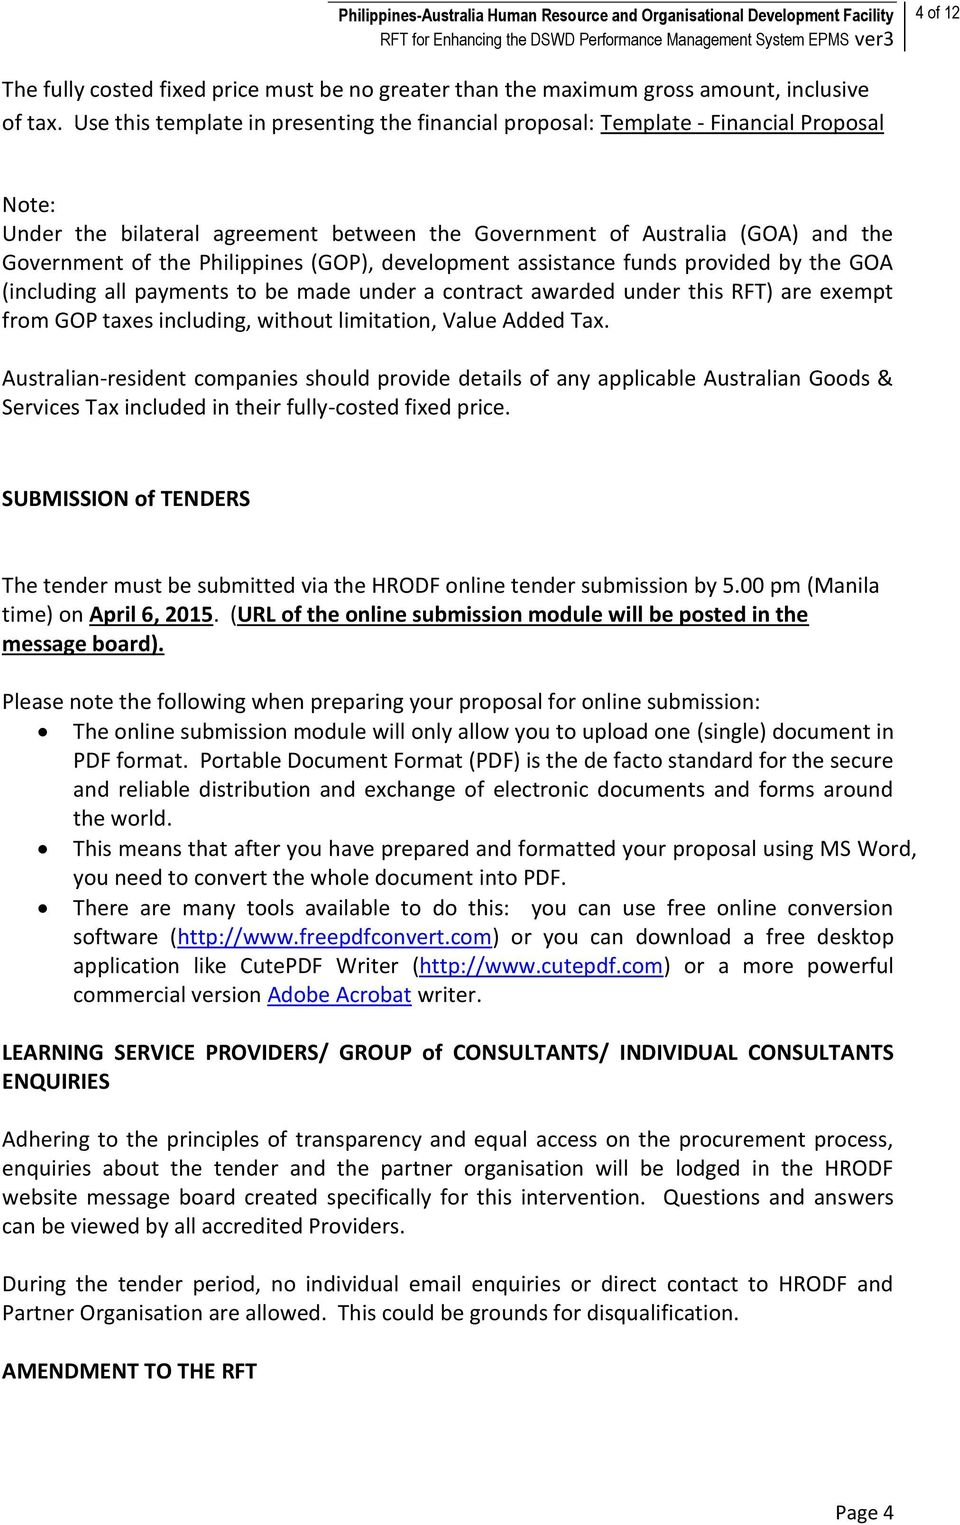 Request for Tender (RFT) - PDF